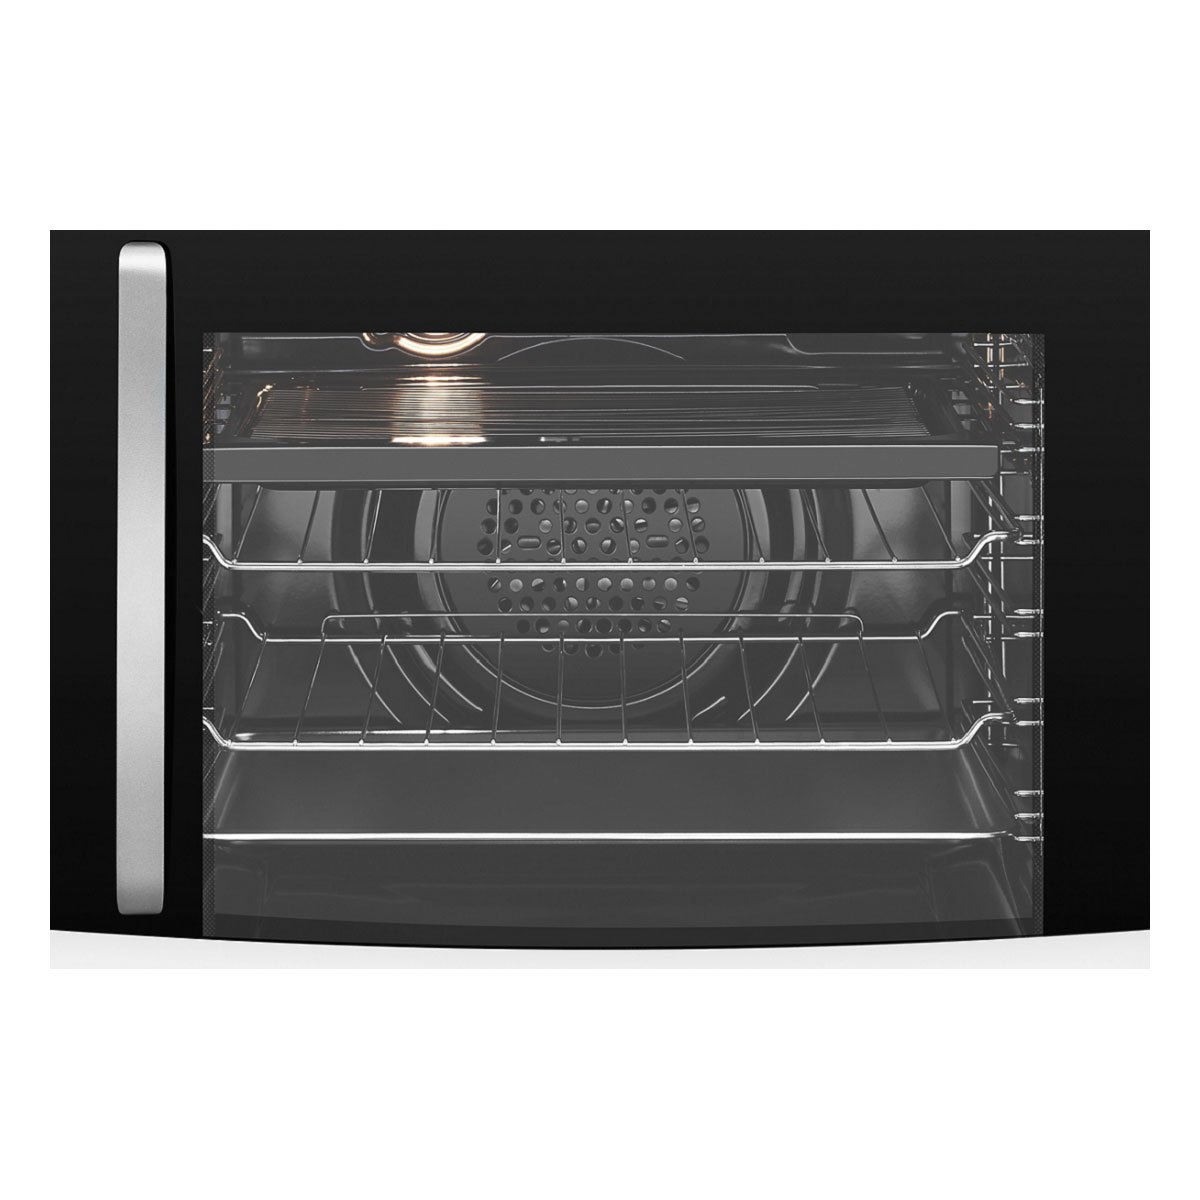 Westinghouse WVES613W-R 600mm Electric Wall Oven 26961